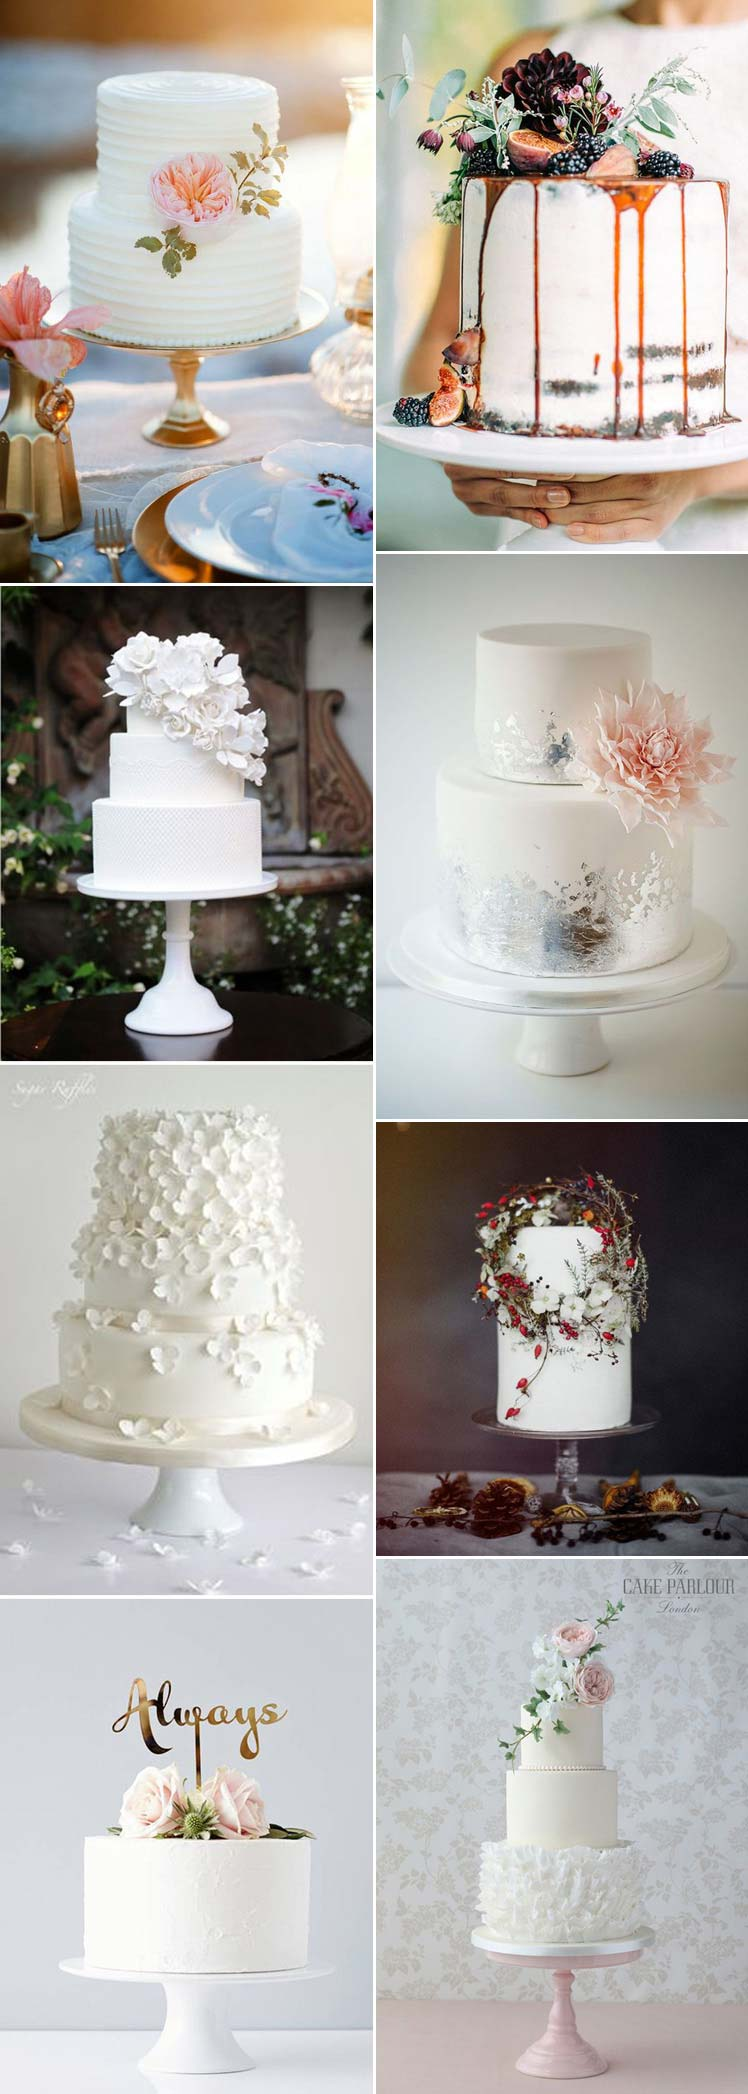 wonderful non-traditional white wedding cakes